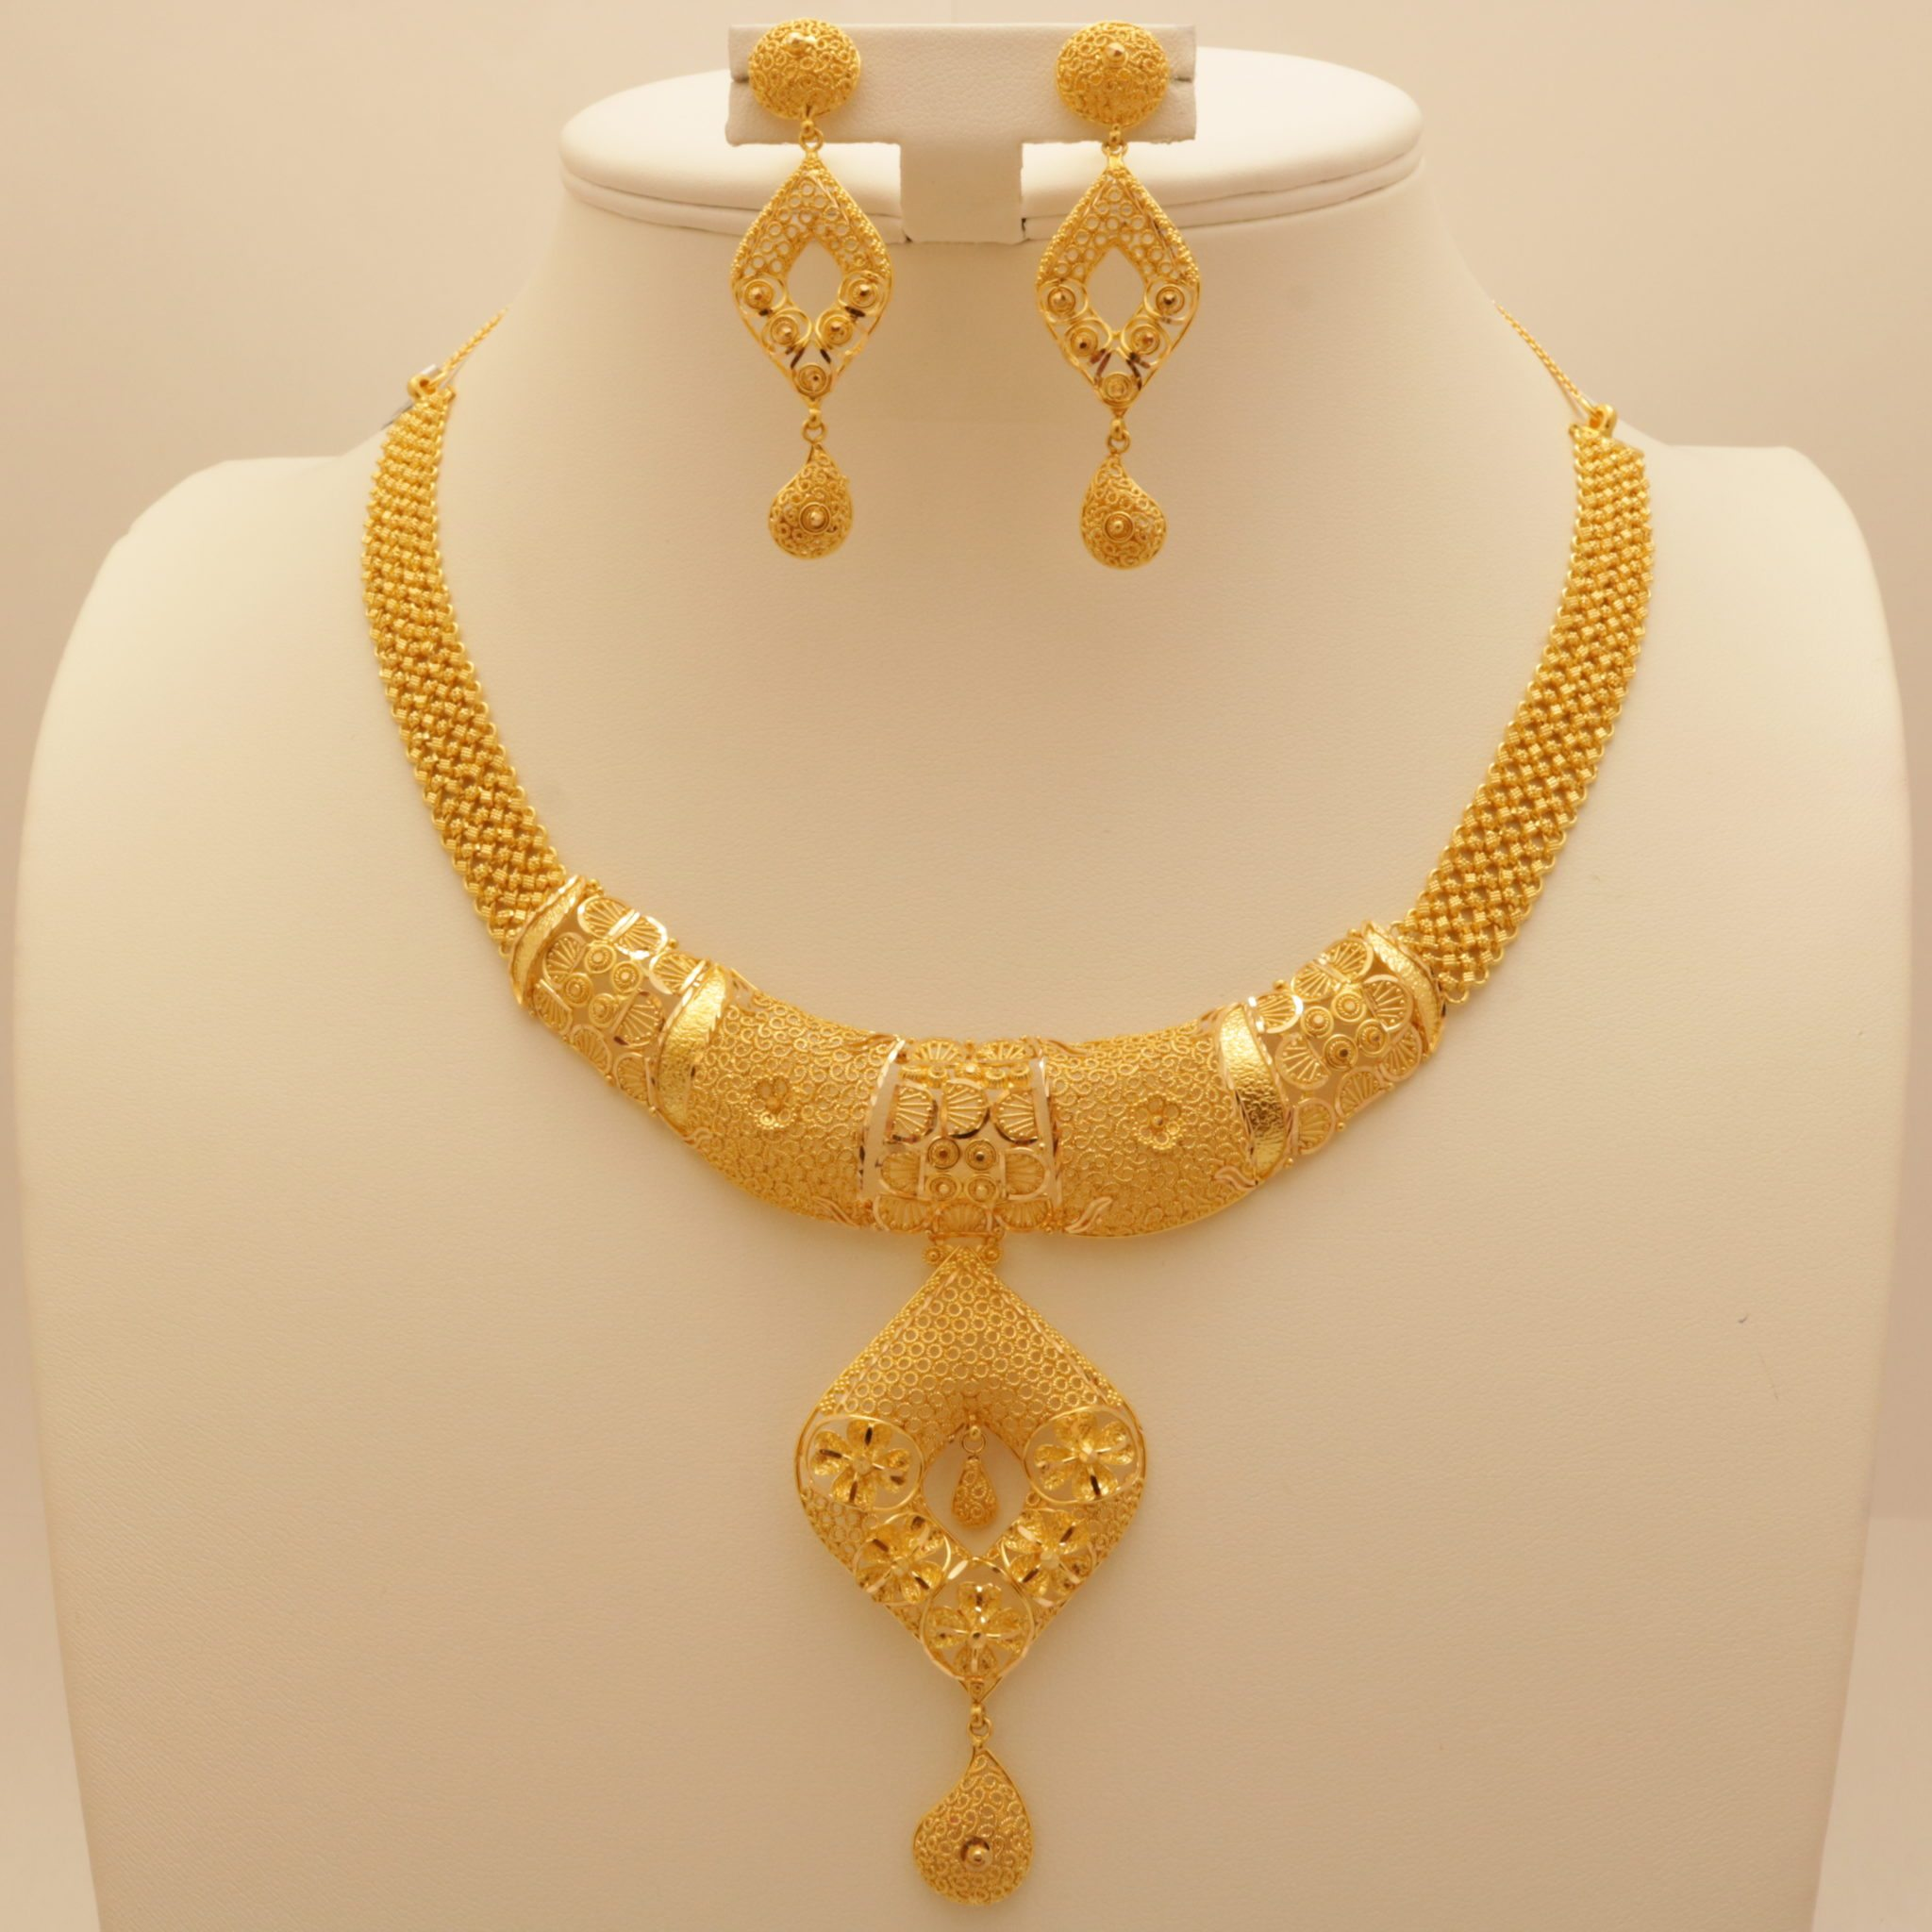 orders necklace custom order online buy banner indian jewelry made jewelers store bespoke gold to totaram